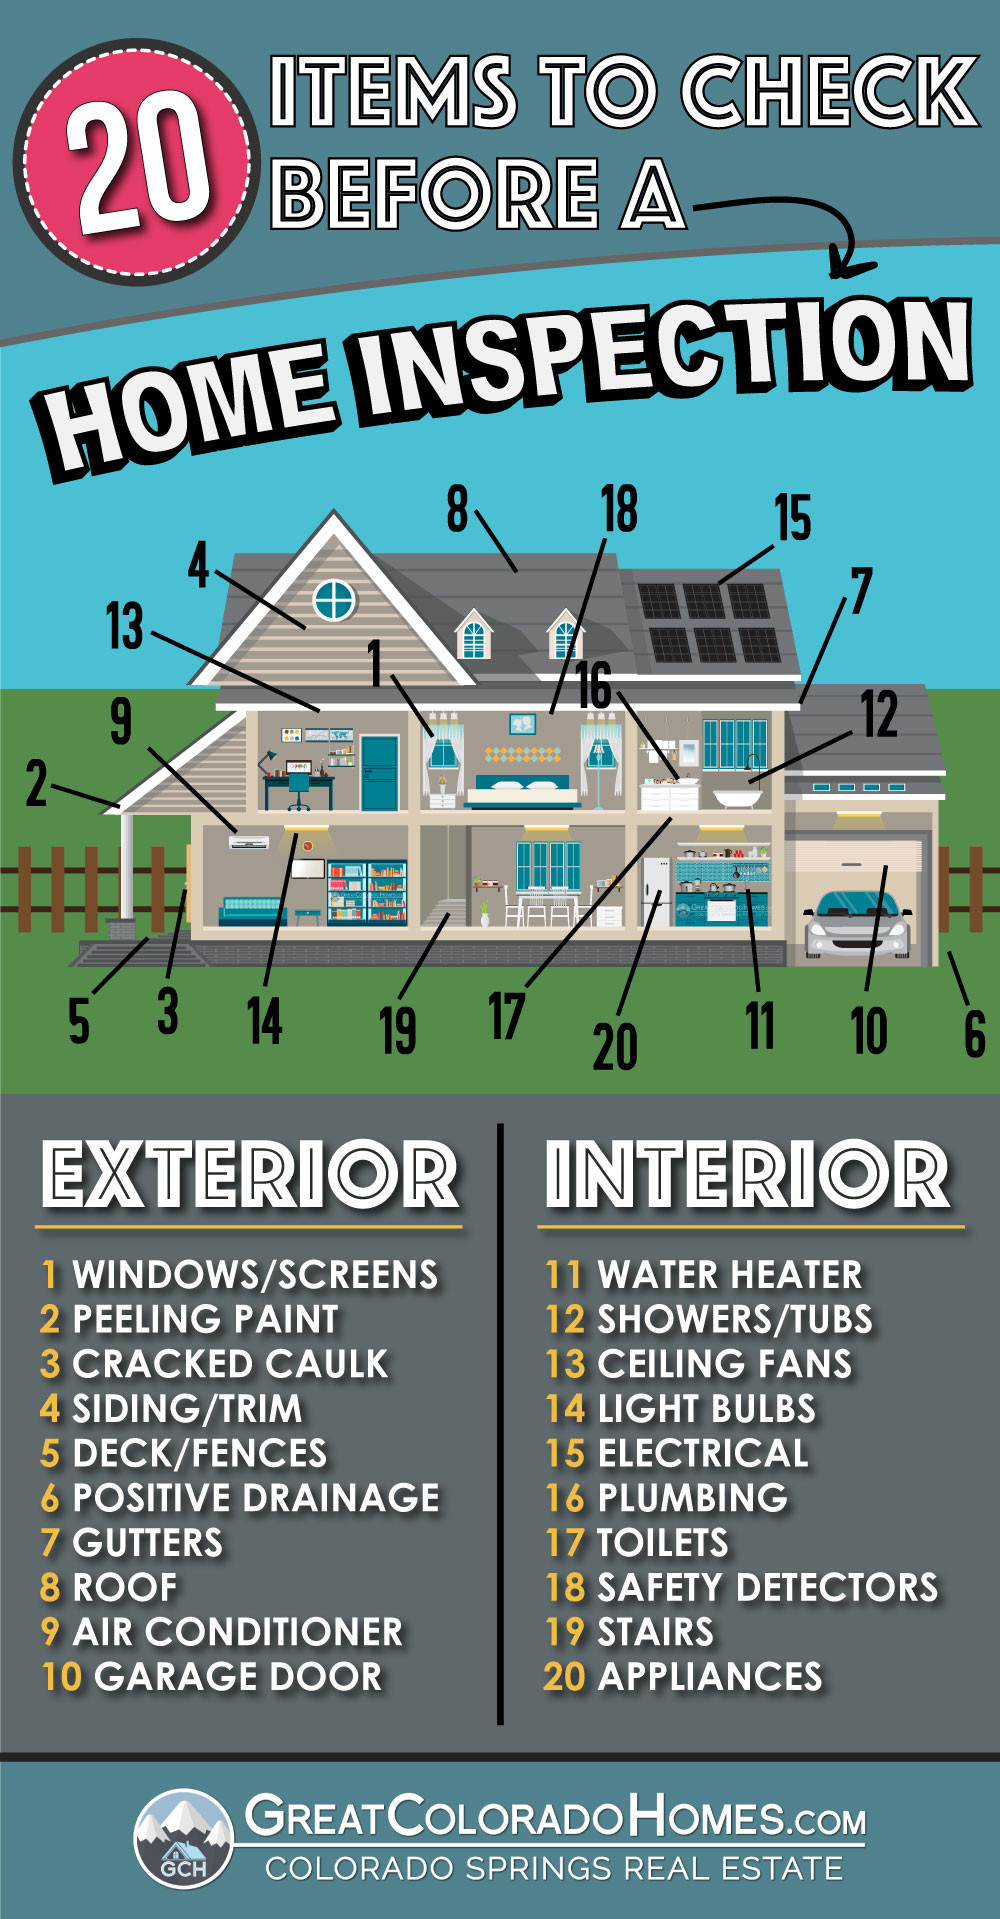 20 Items to Check Before A Home Inspection